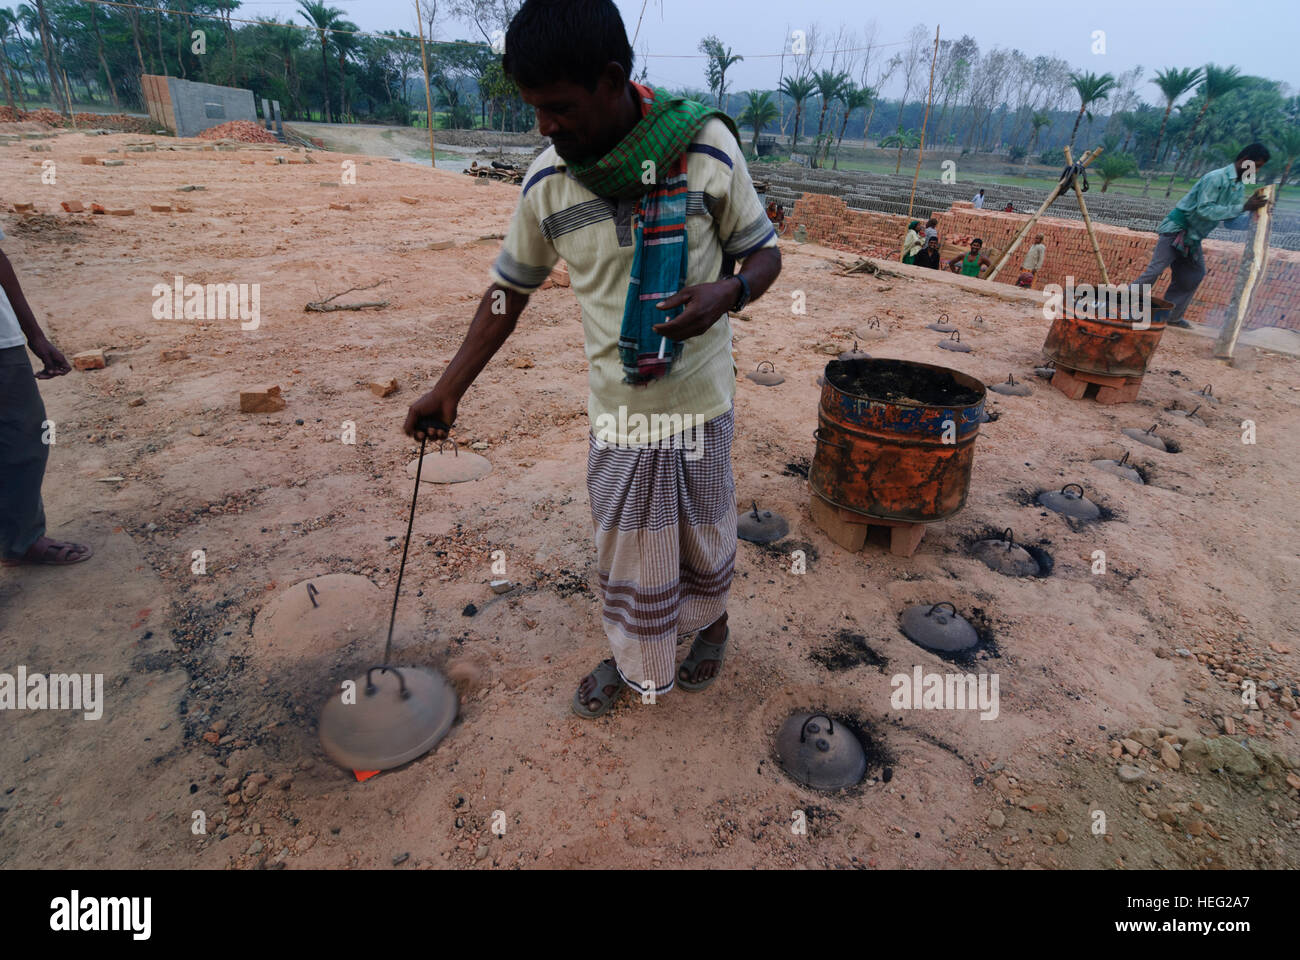 Noapra: Brickwork in the form of a ring furnace; The worker opens a hole to control the fire, bricks, Khulna Division, - Stock Image